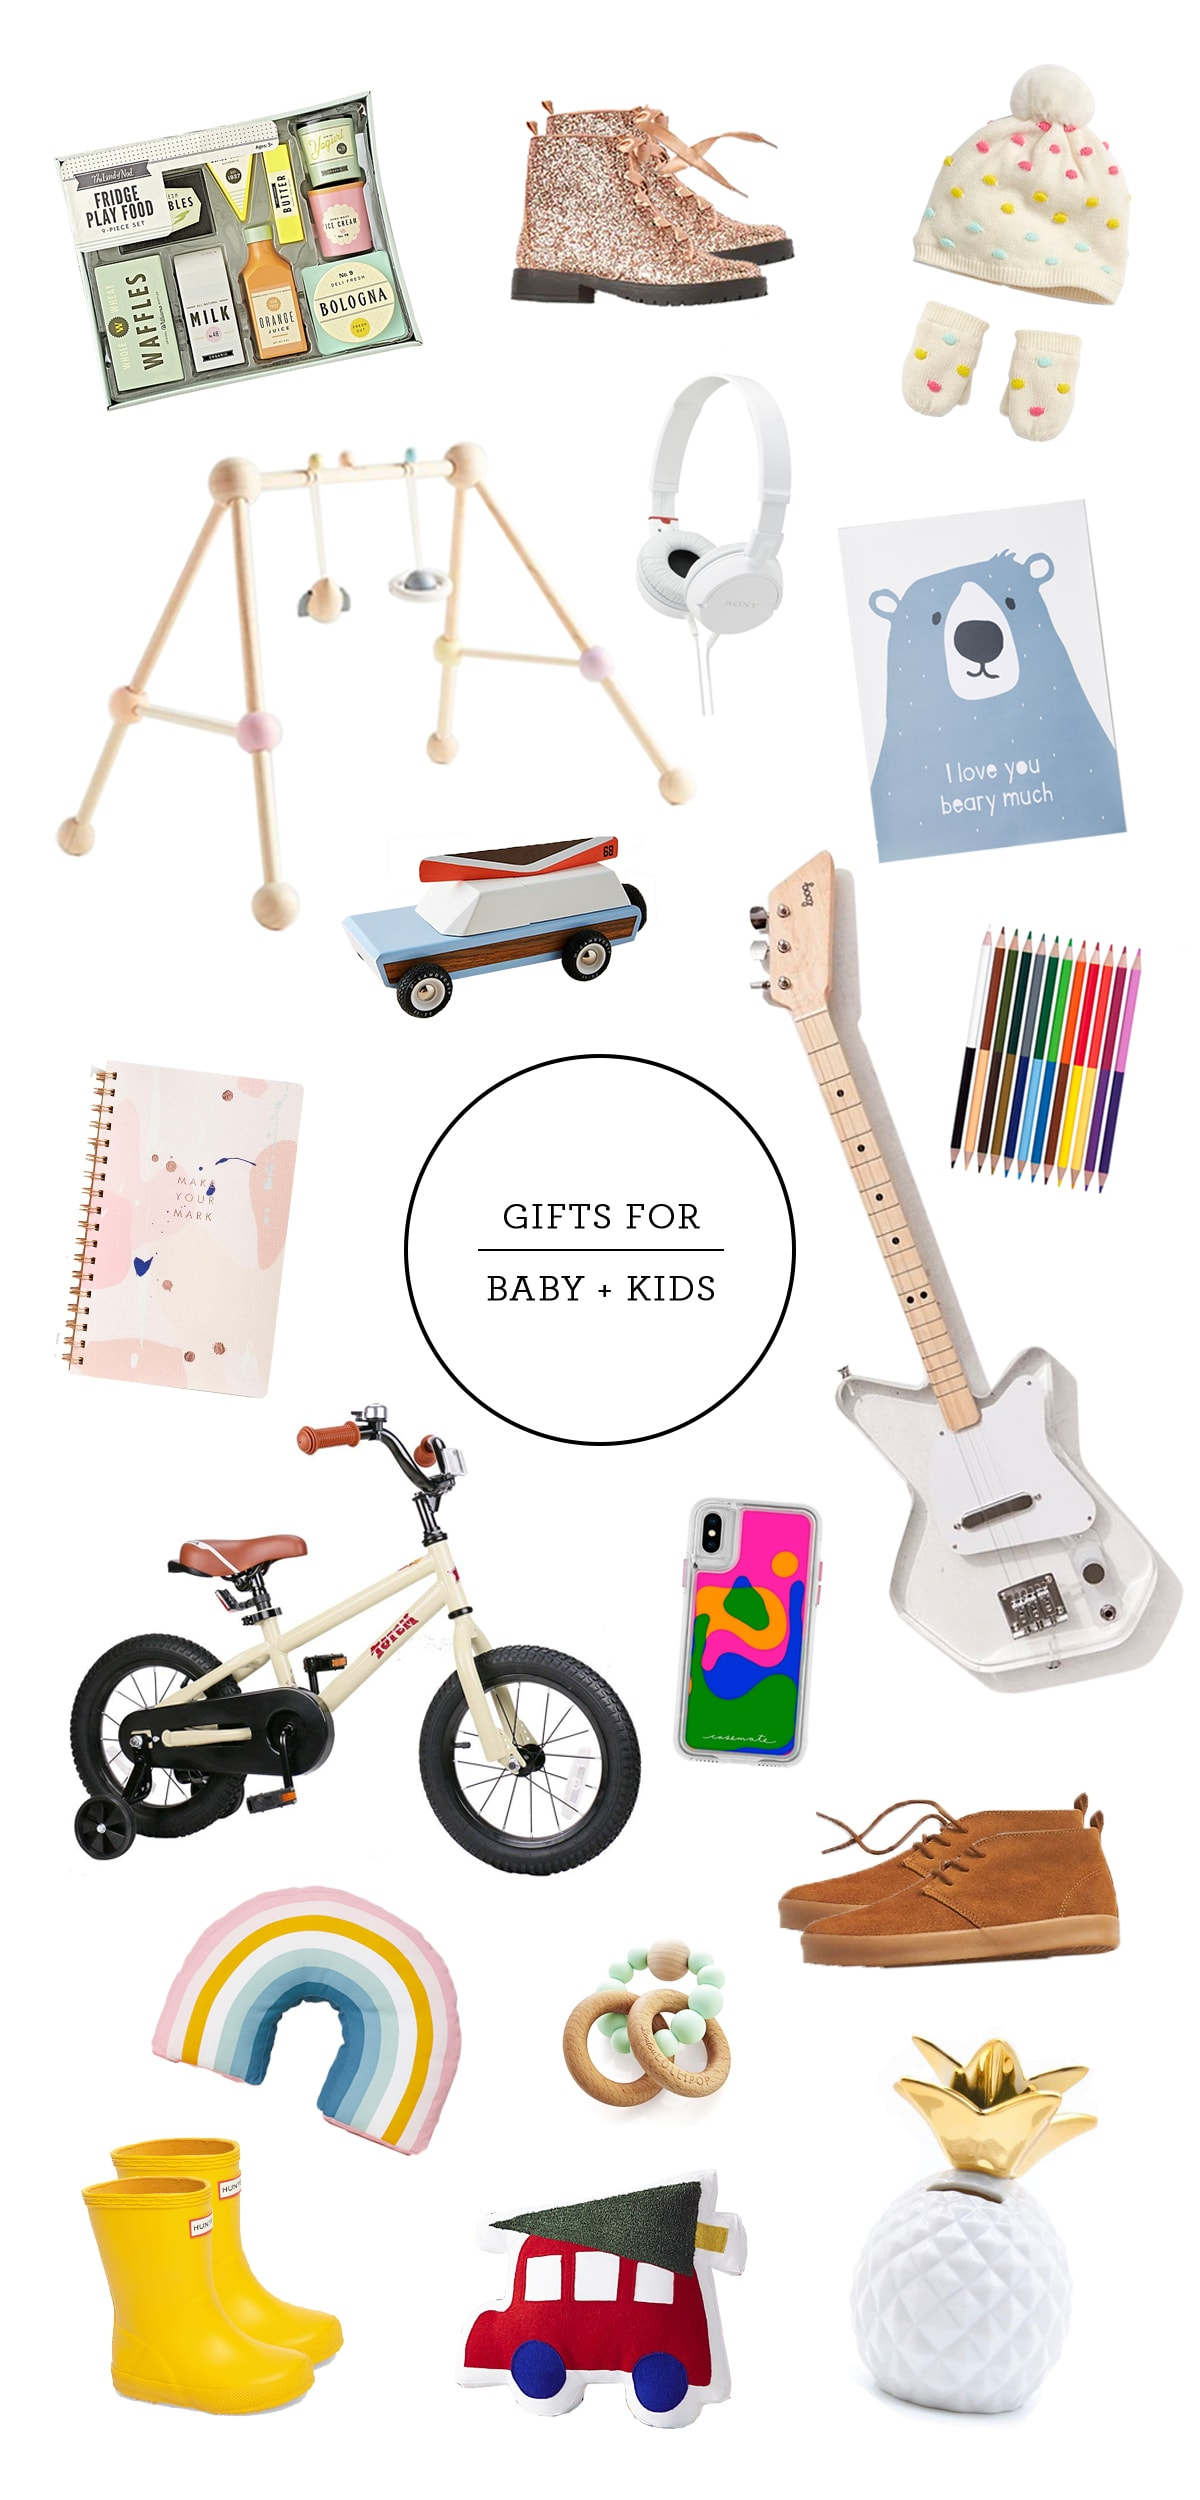 Cute Gifts for Baby and Kids! by top Houston lifestyle blogger Ashley Rose of Sugar & Cloth #gift #giftguide #baby #ideas #christmas #presents #holidays #kids